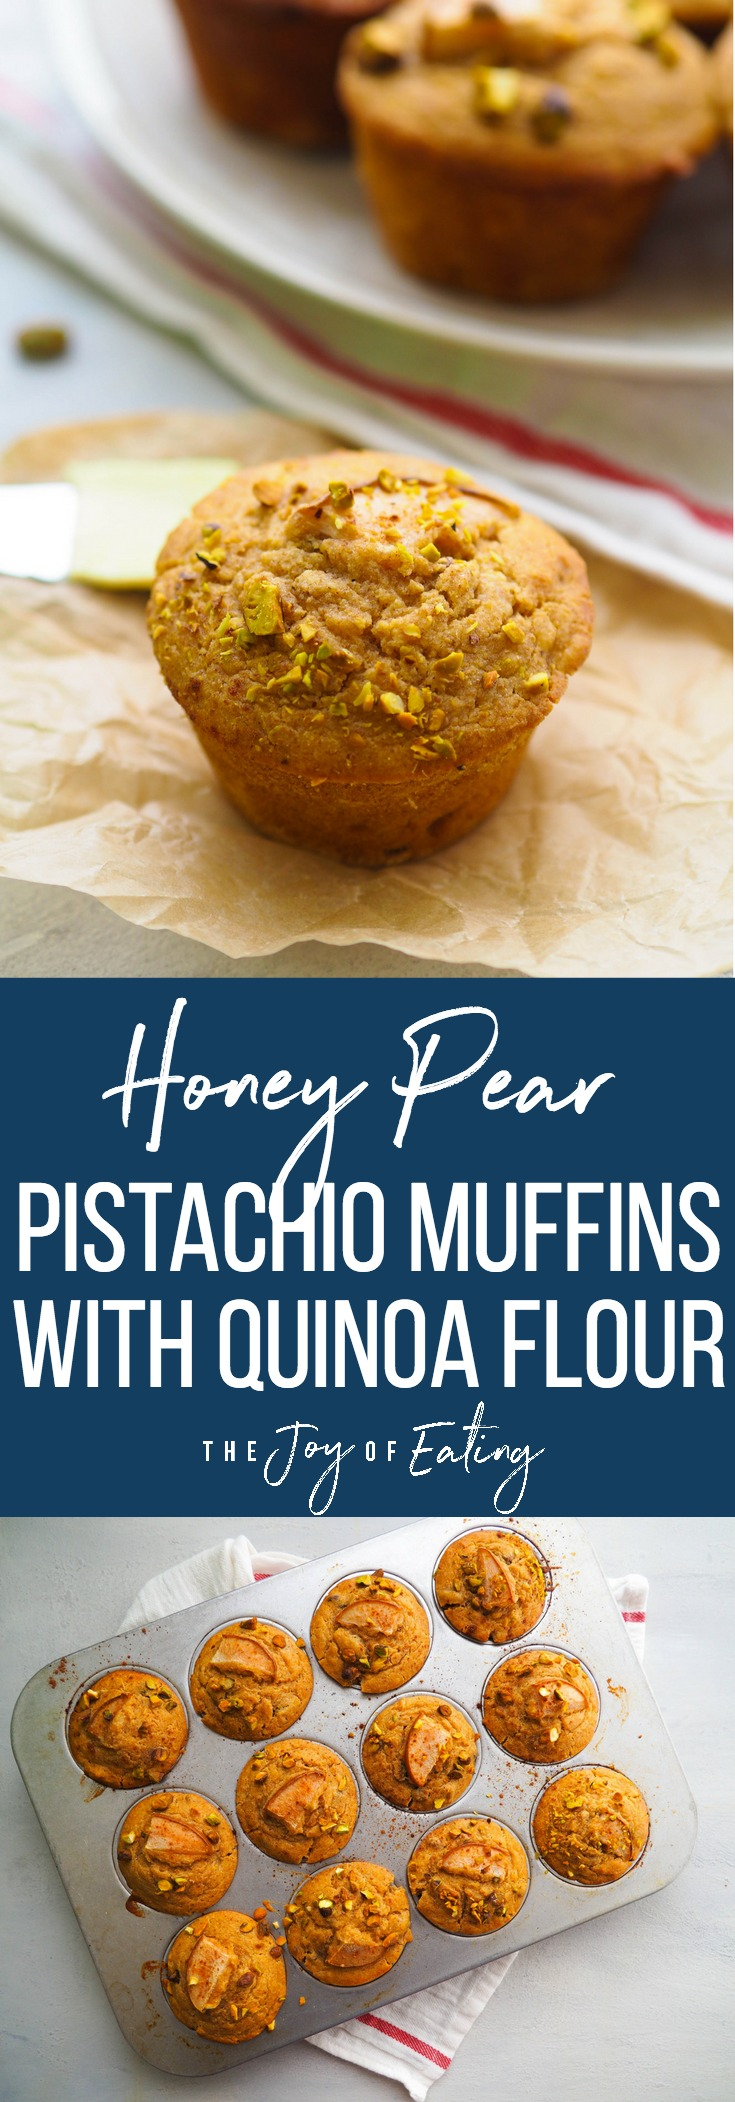 These honey pear pistachio muffins are packed with fiber and protein from quinoa flour! #baking #muffin #healthy #breakfast